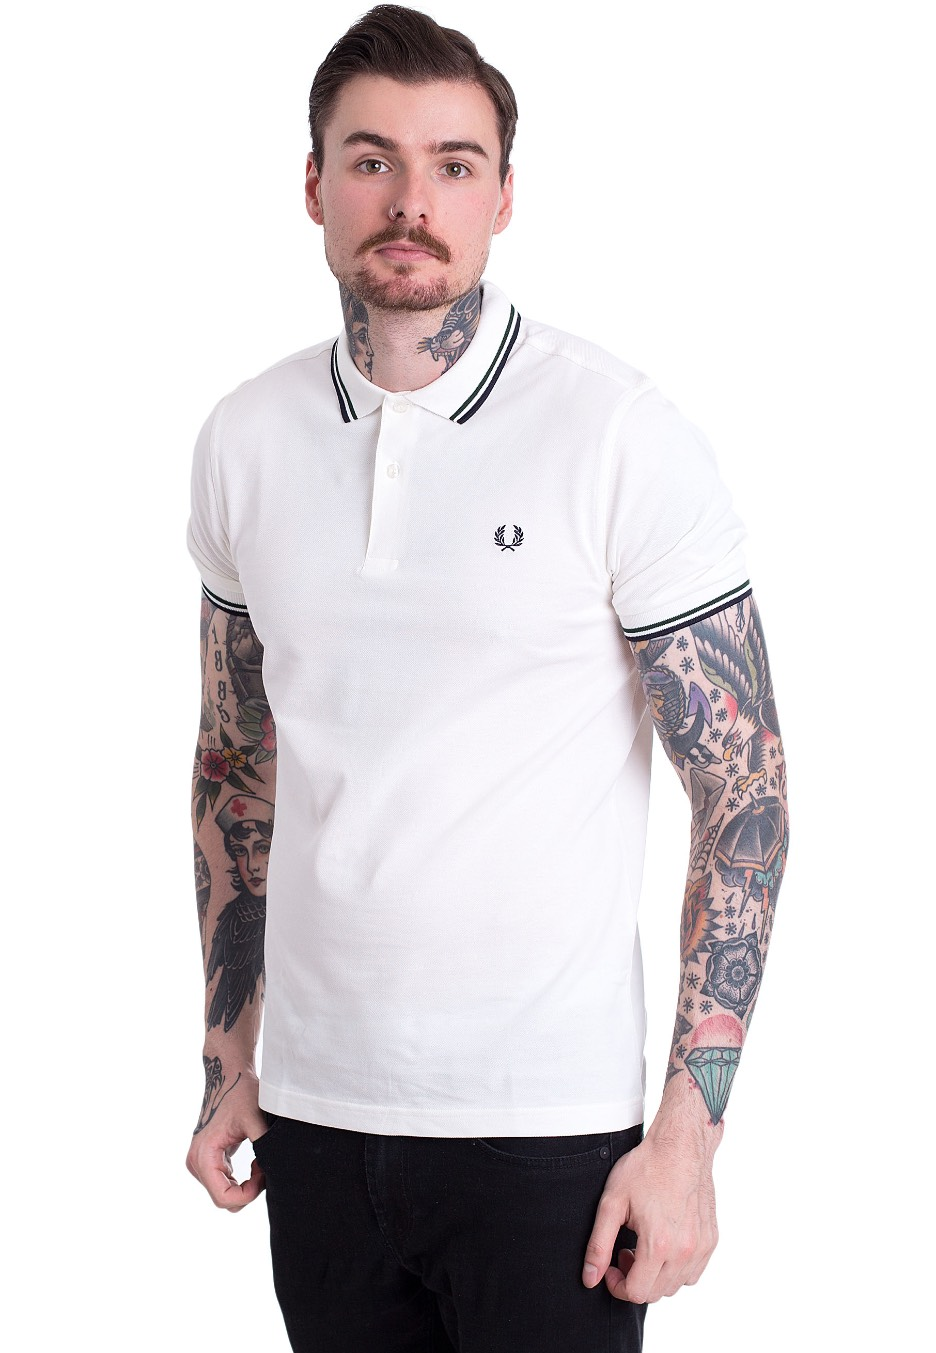 266ab4509 Fred Perry - Twin Tipped Fred Perry Snow White/Ivy/Navy - Polo - Streetwear  Shop - Impericon.com AU